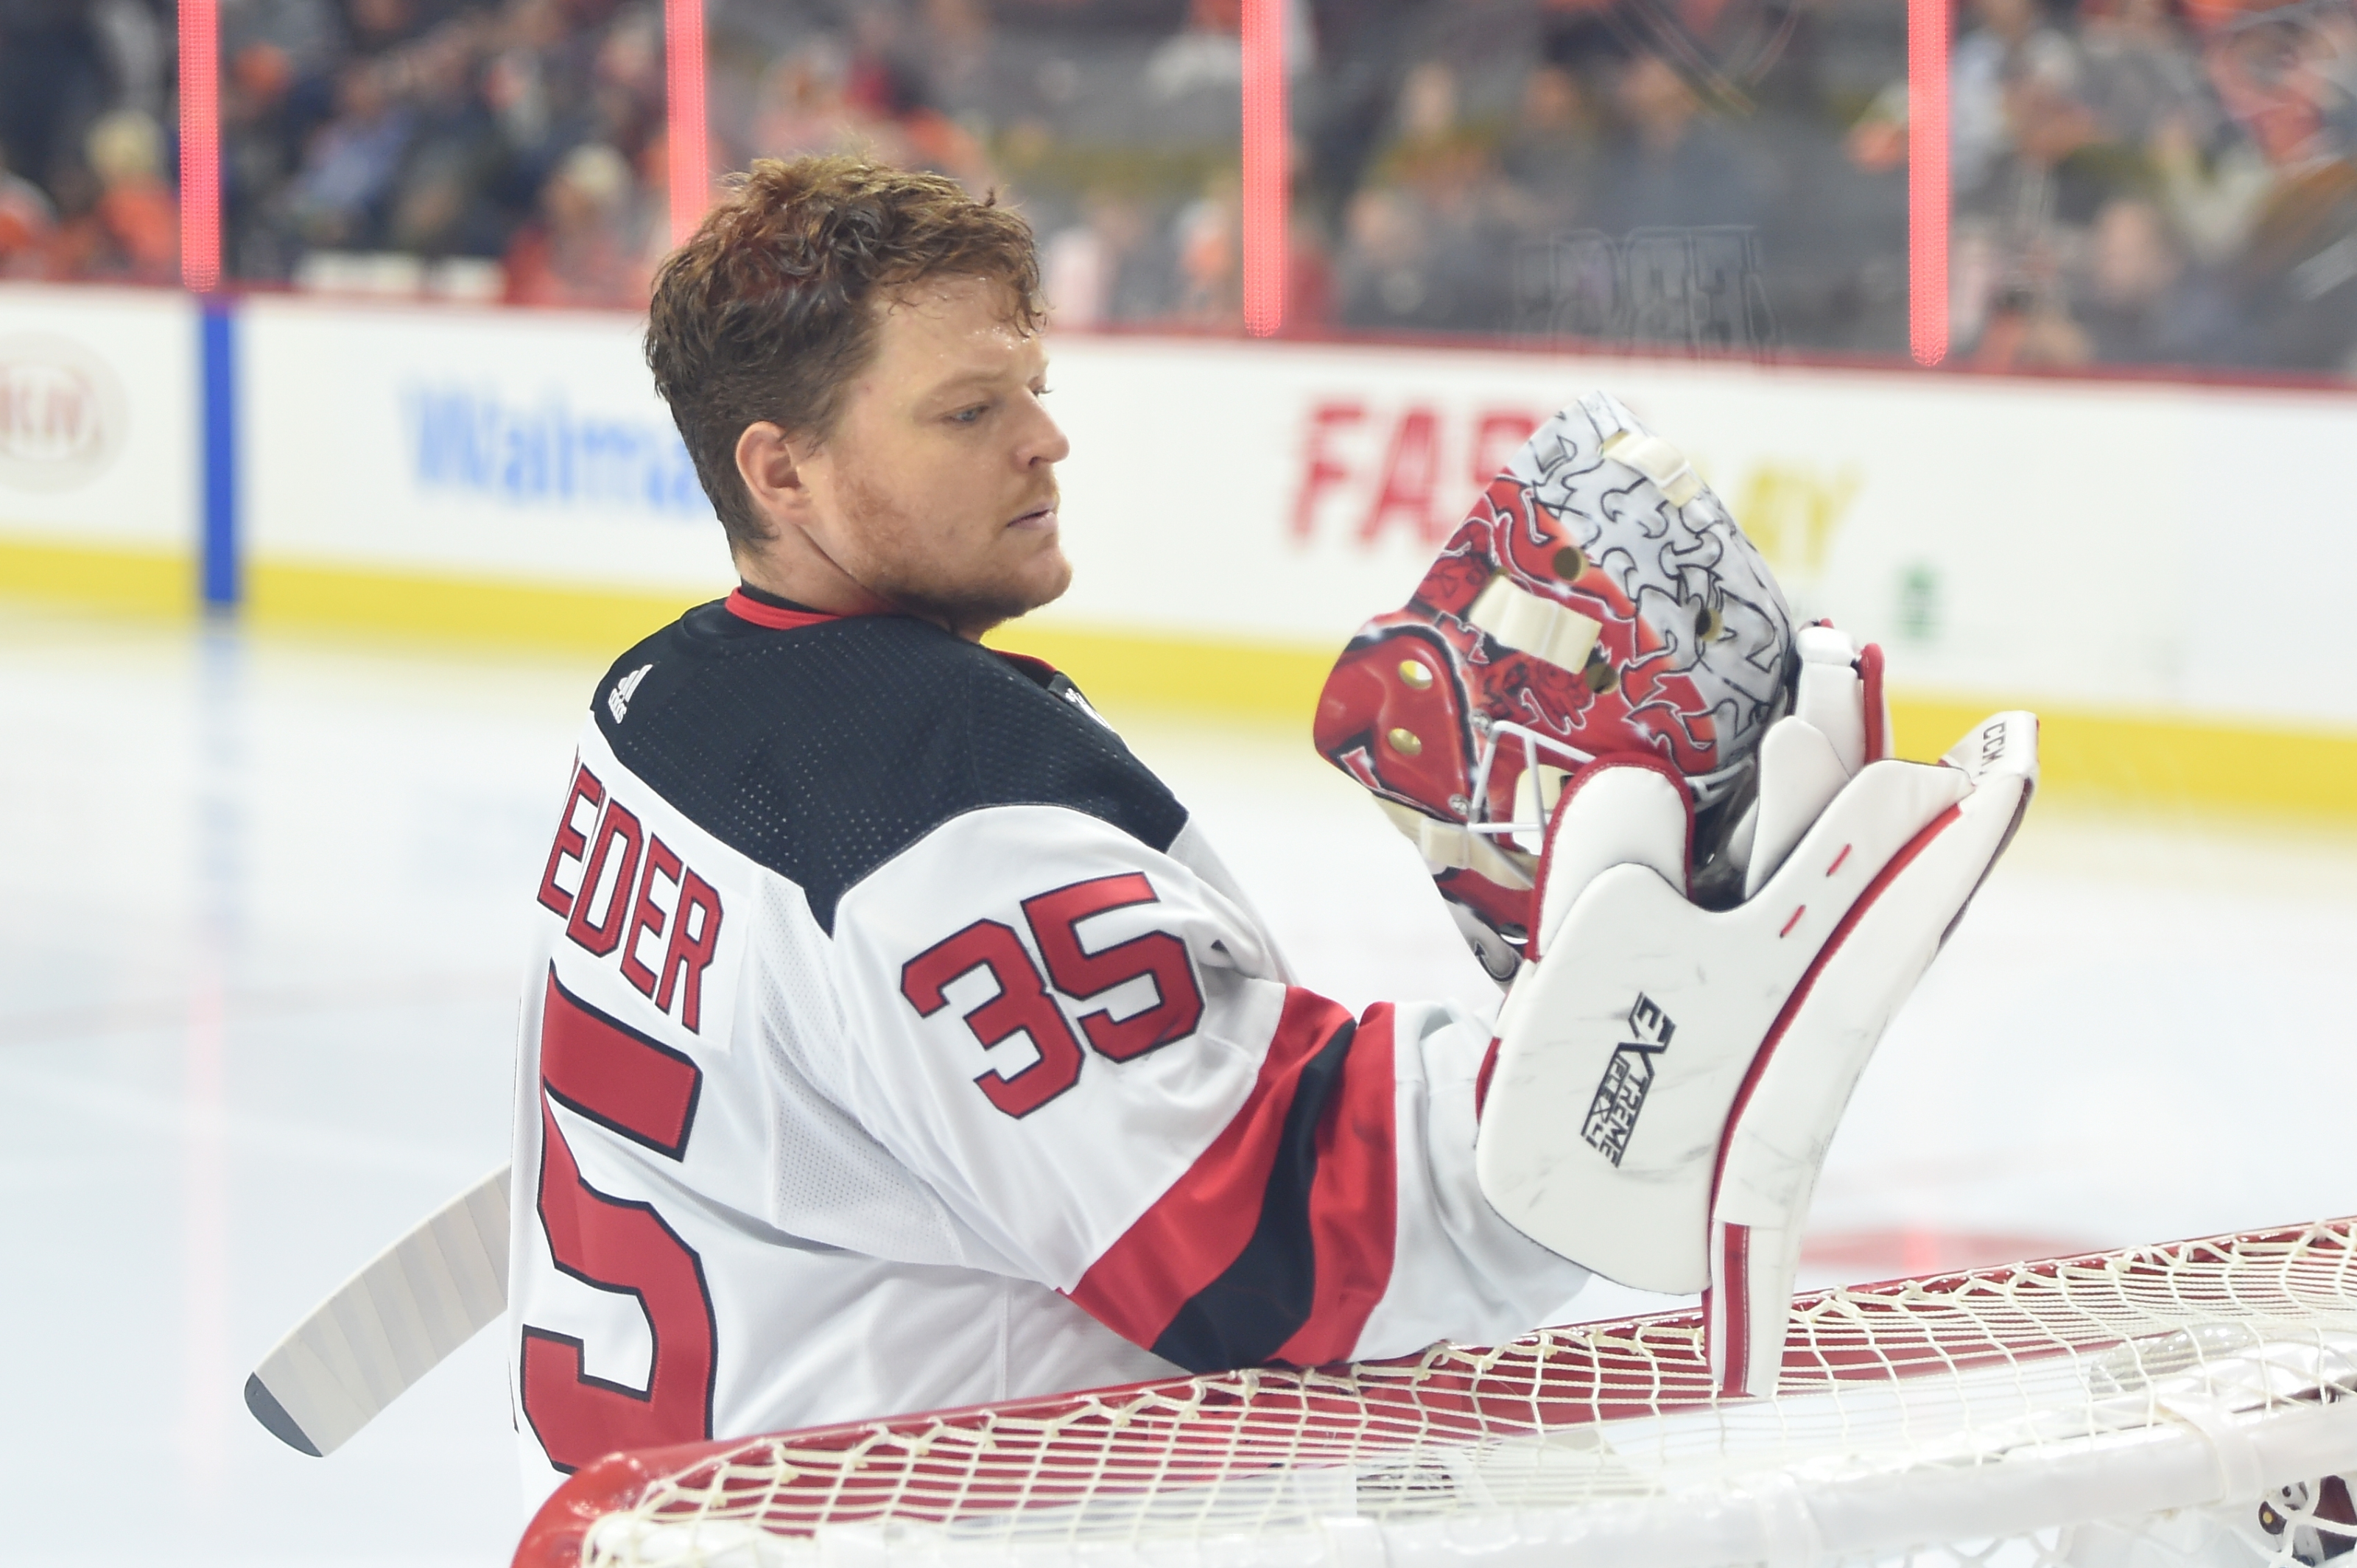 There's hope for a Cory Schneider rebound with the New Jersey Devils